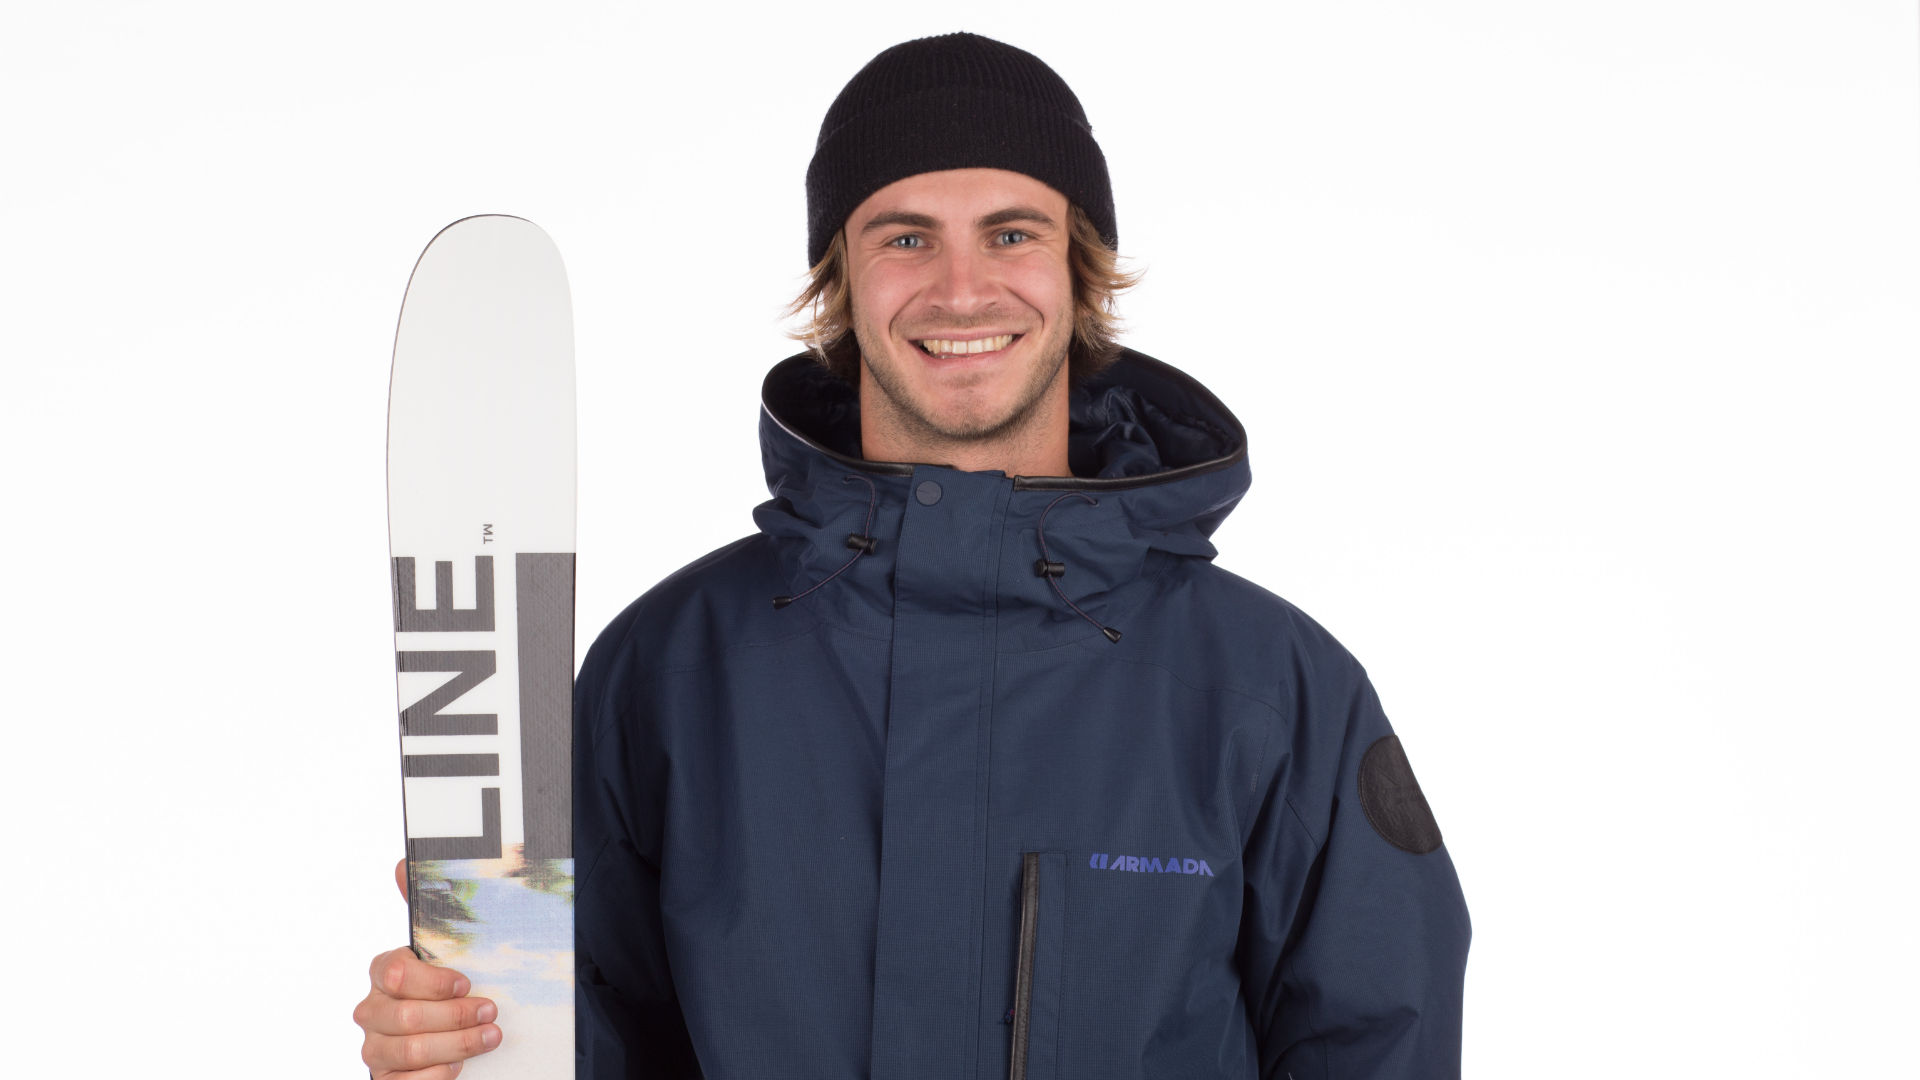 Model with a pair of freestyle freeskis